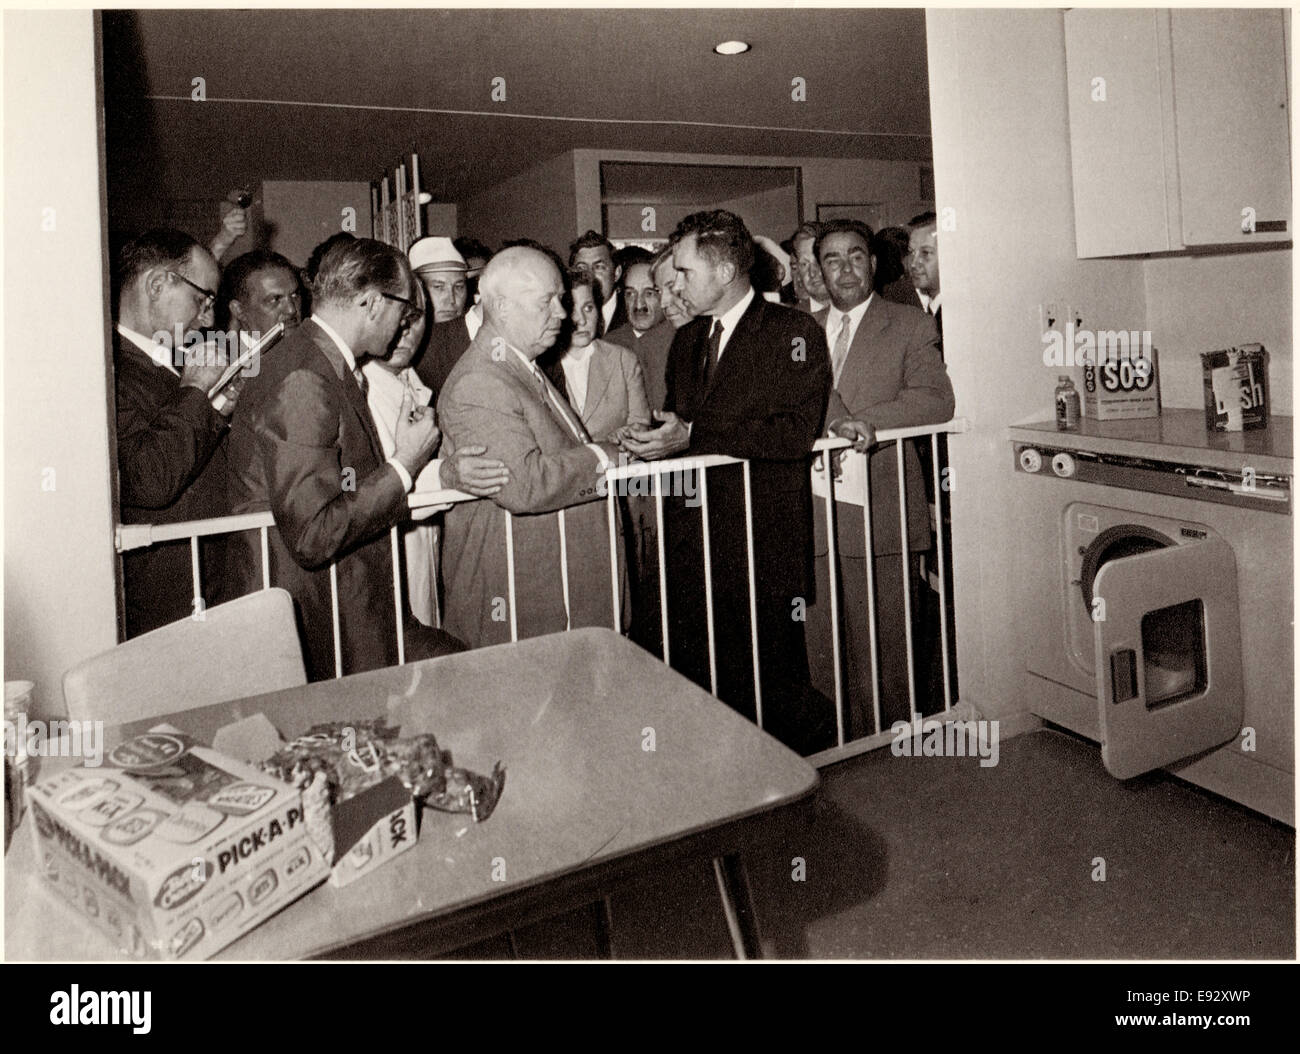 U.S. Vice President Richard Nixon, Soviet Premier Nikita Khruschev attending American Exhibition resulting in 'Kitchen - Stock Image